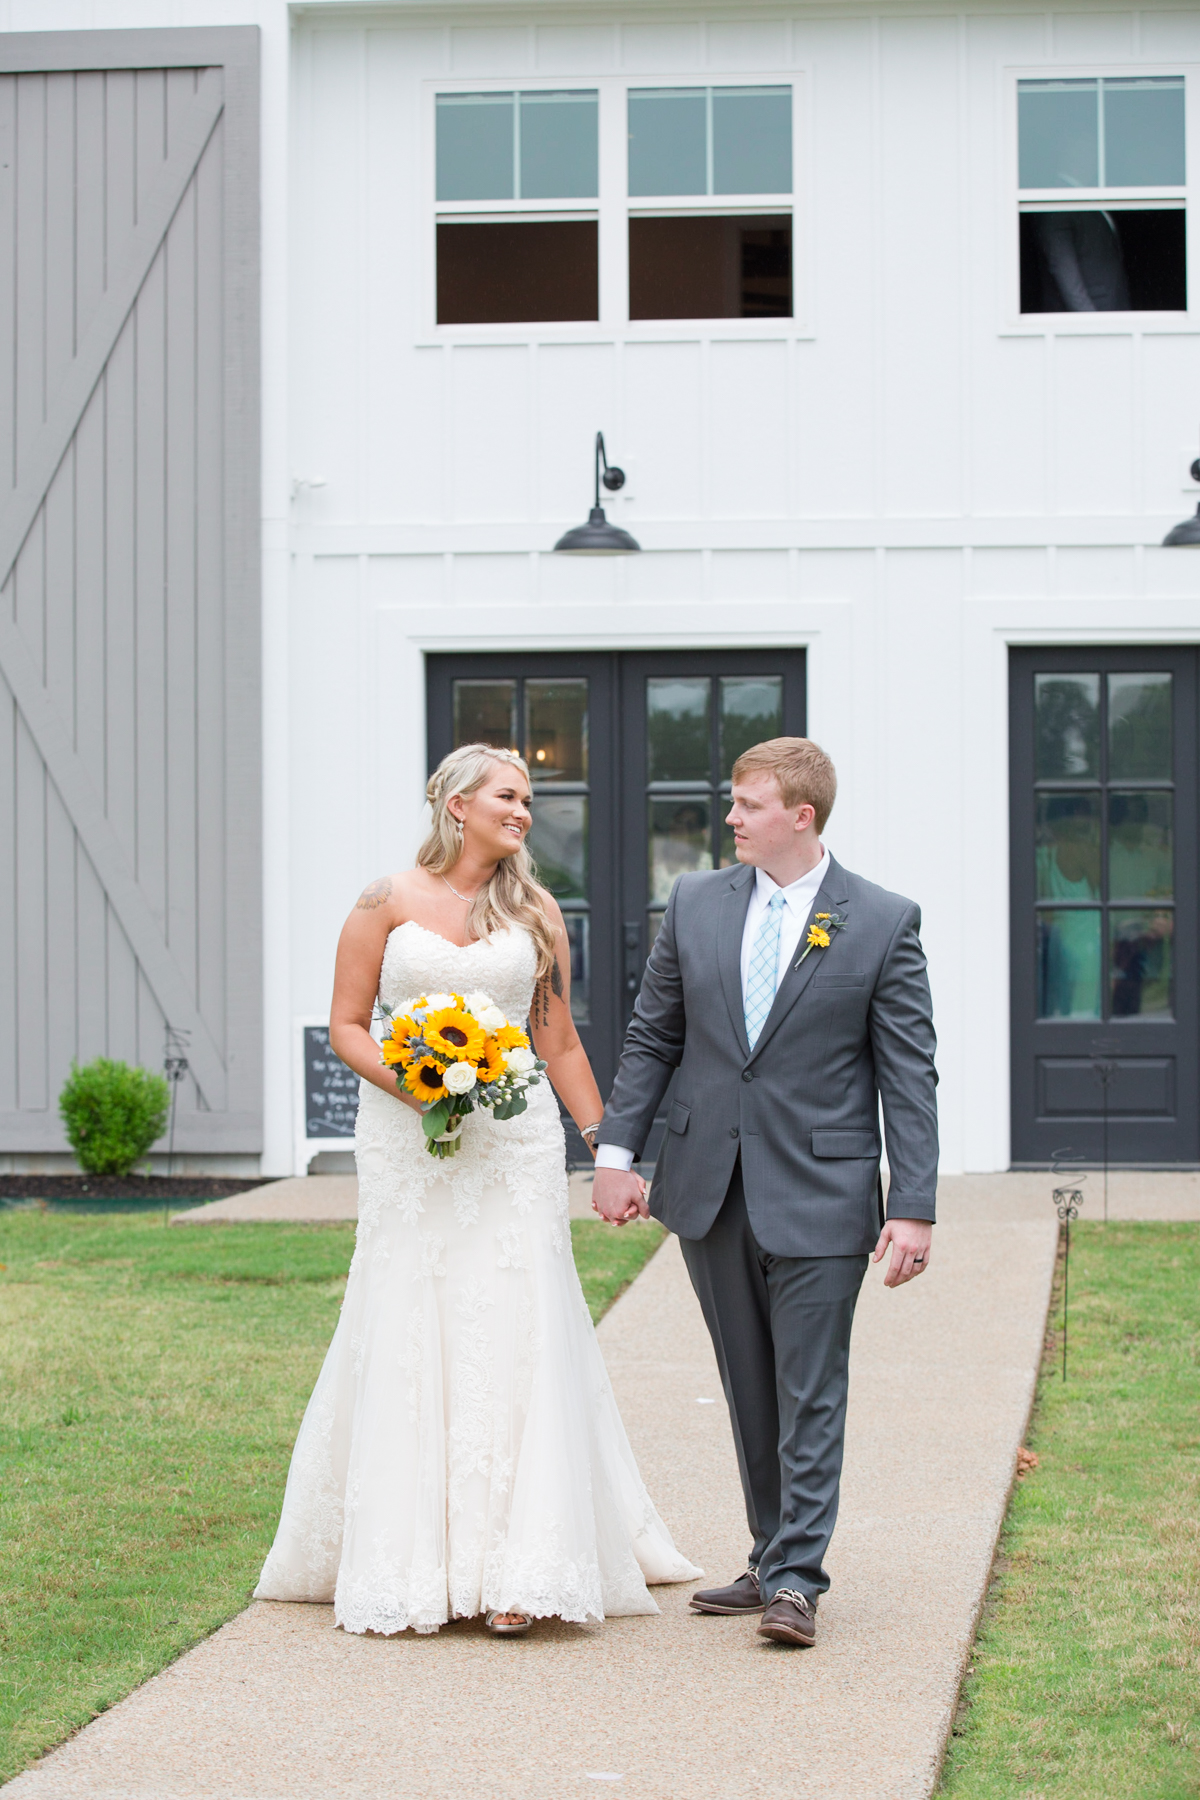 The-venue-at-white-oak-farms-wedding-nashville-wedding-photographers-0185.jpg